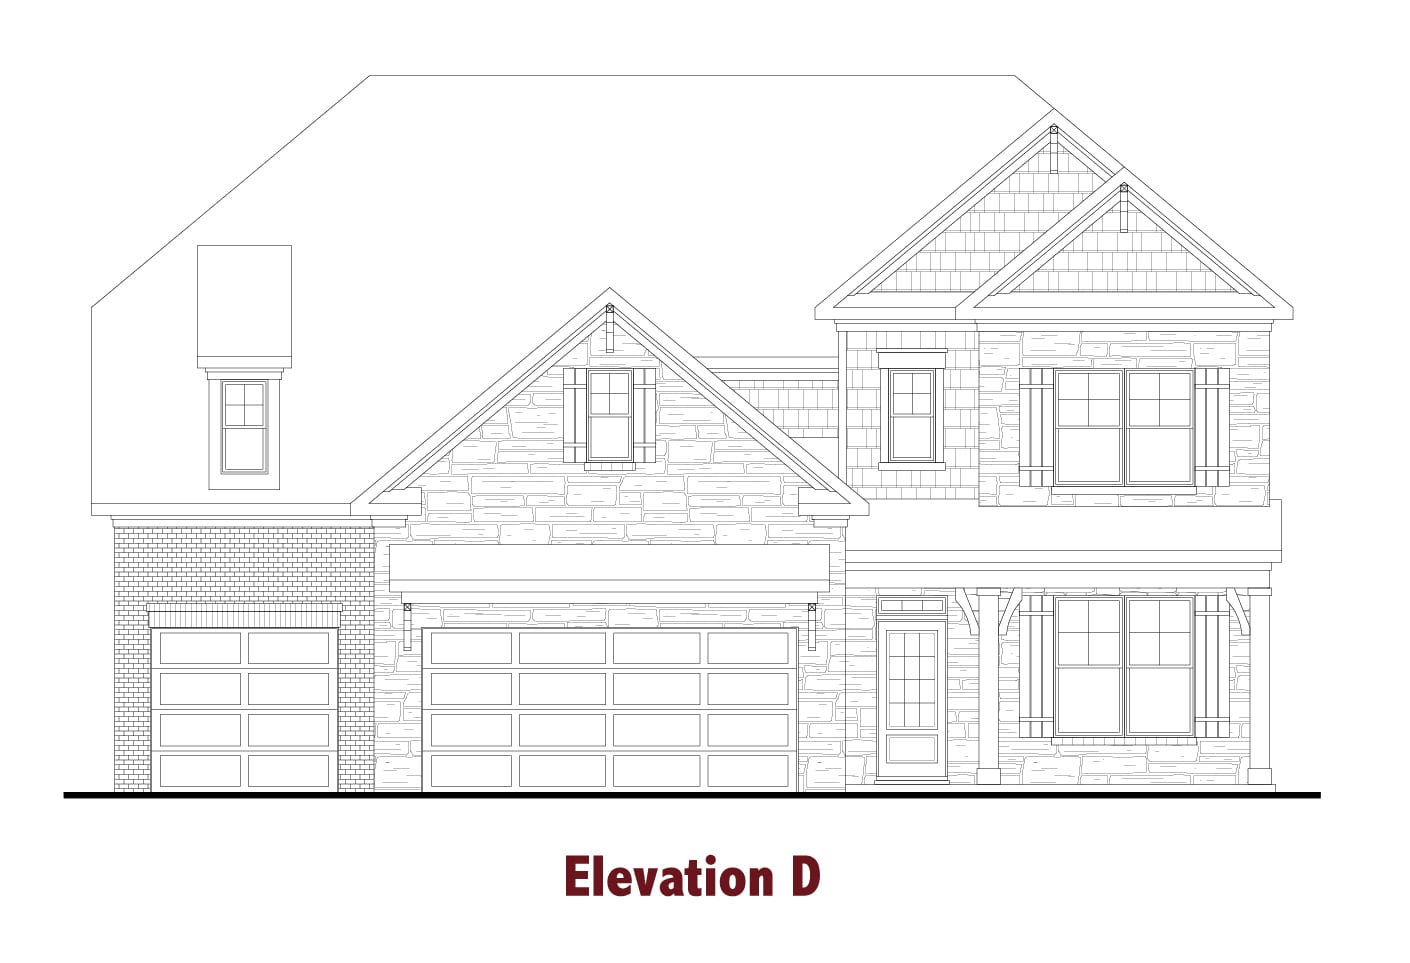 Cottonwood elevations Image